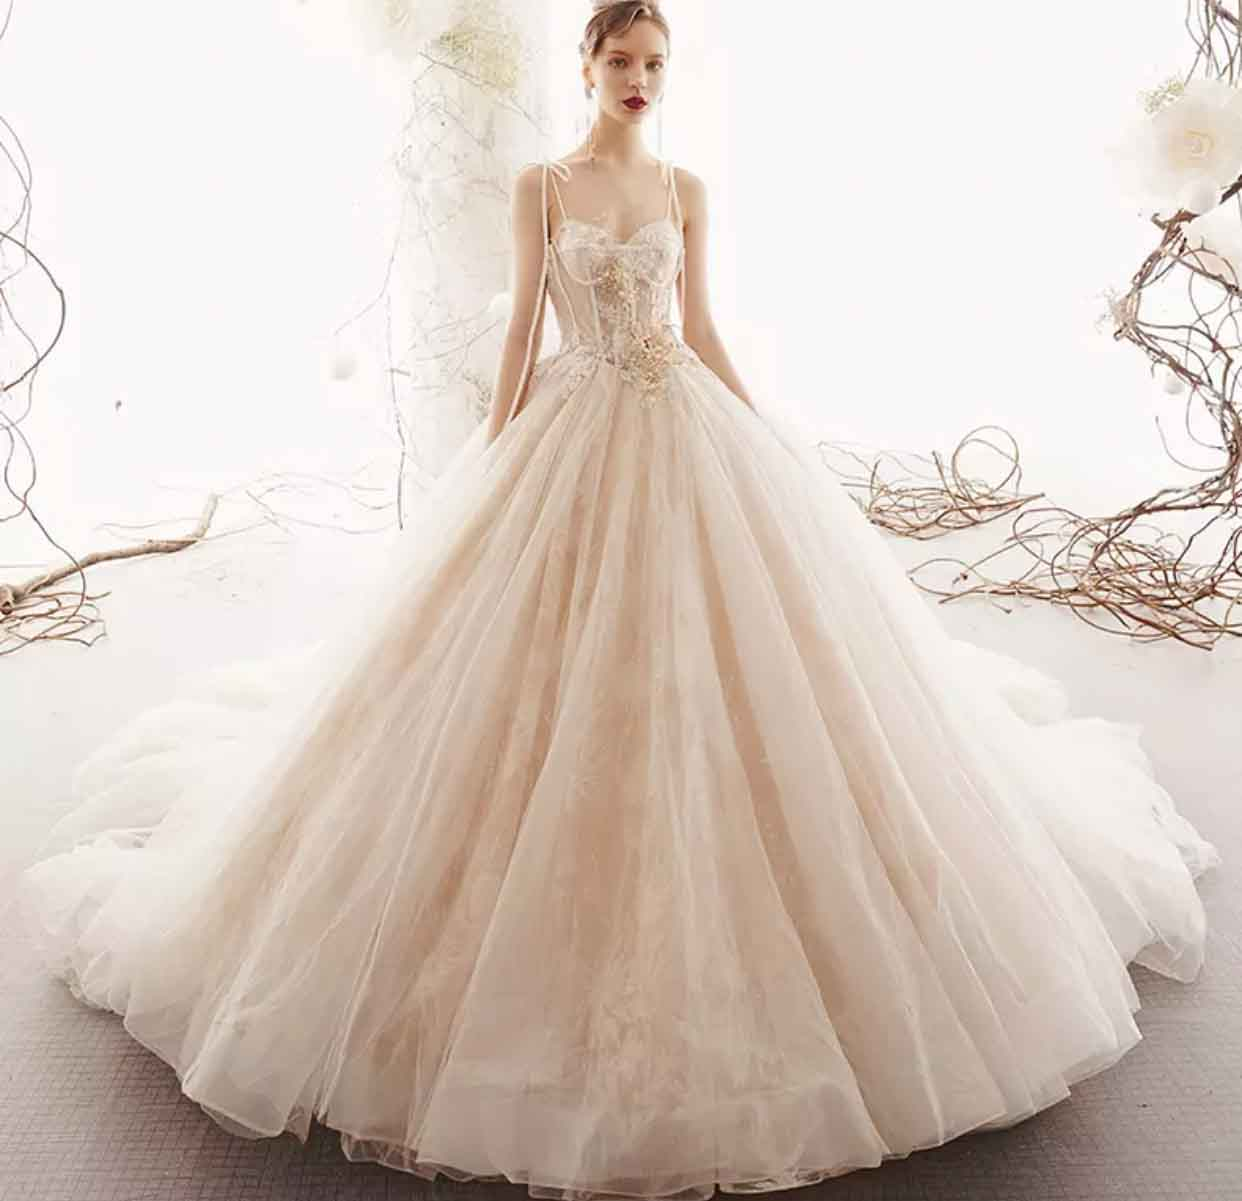 [RENT OR BUY] Custom Made Thin Strap See Through Floral Lace Top Wedding Dress with Flowy Long Monar